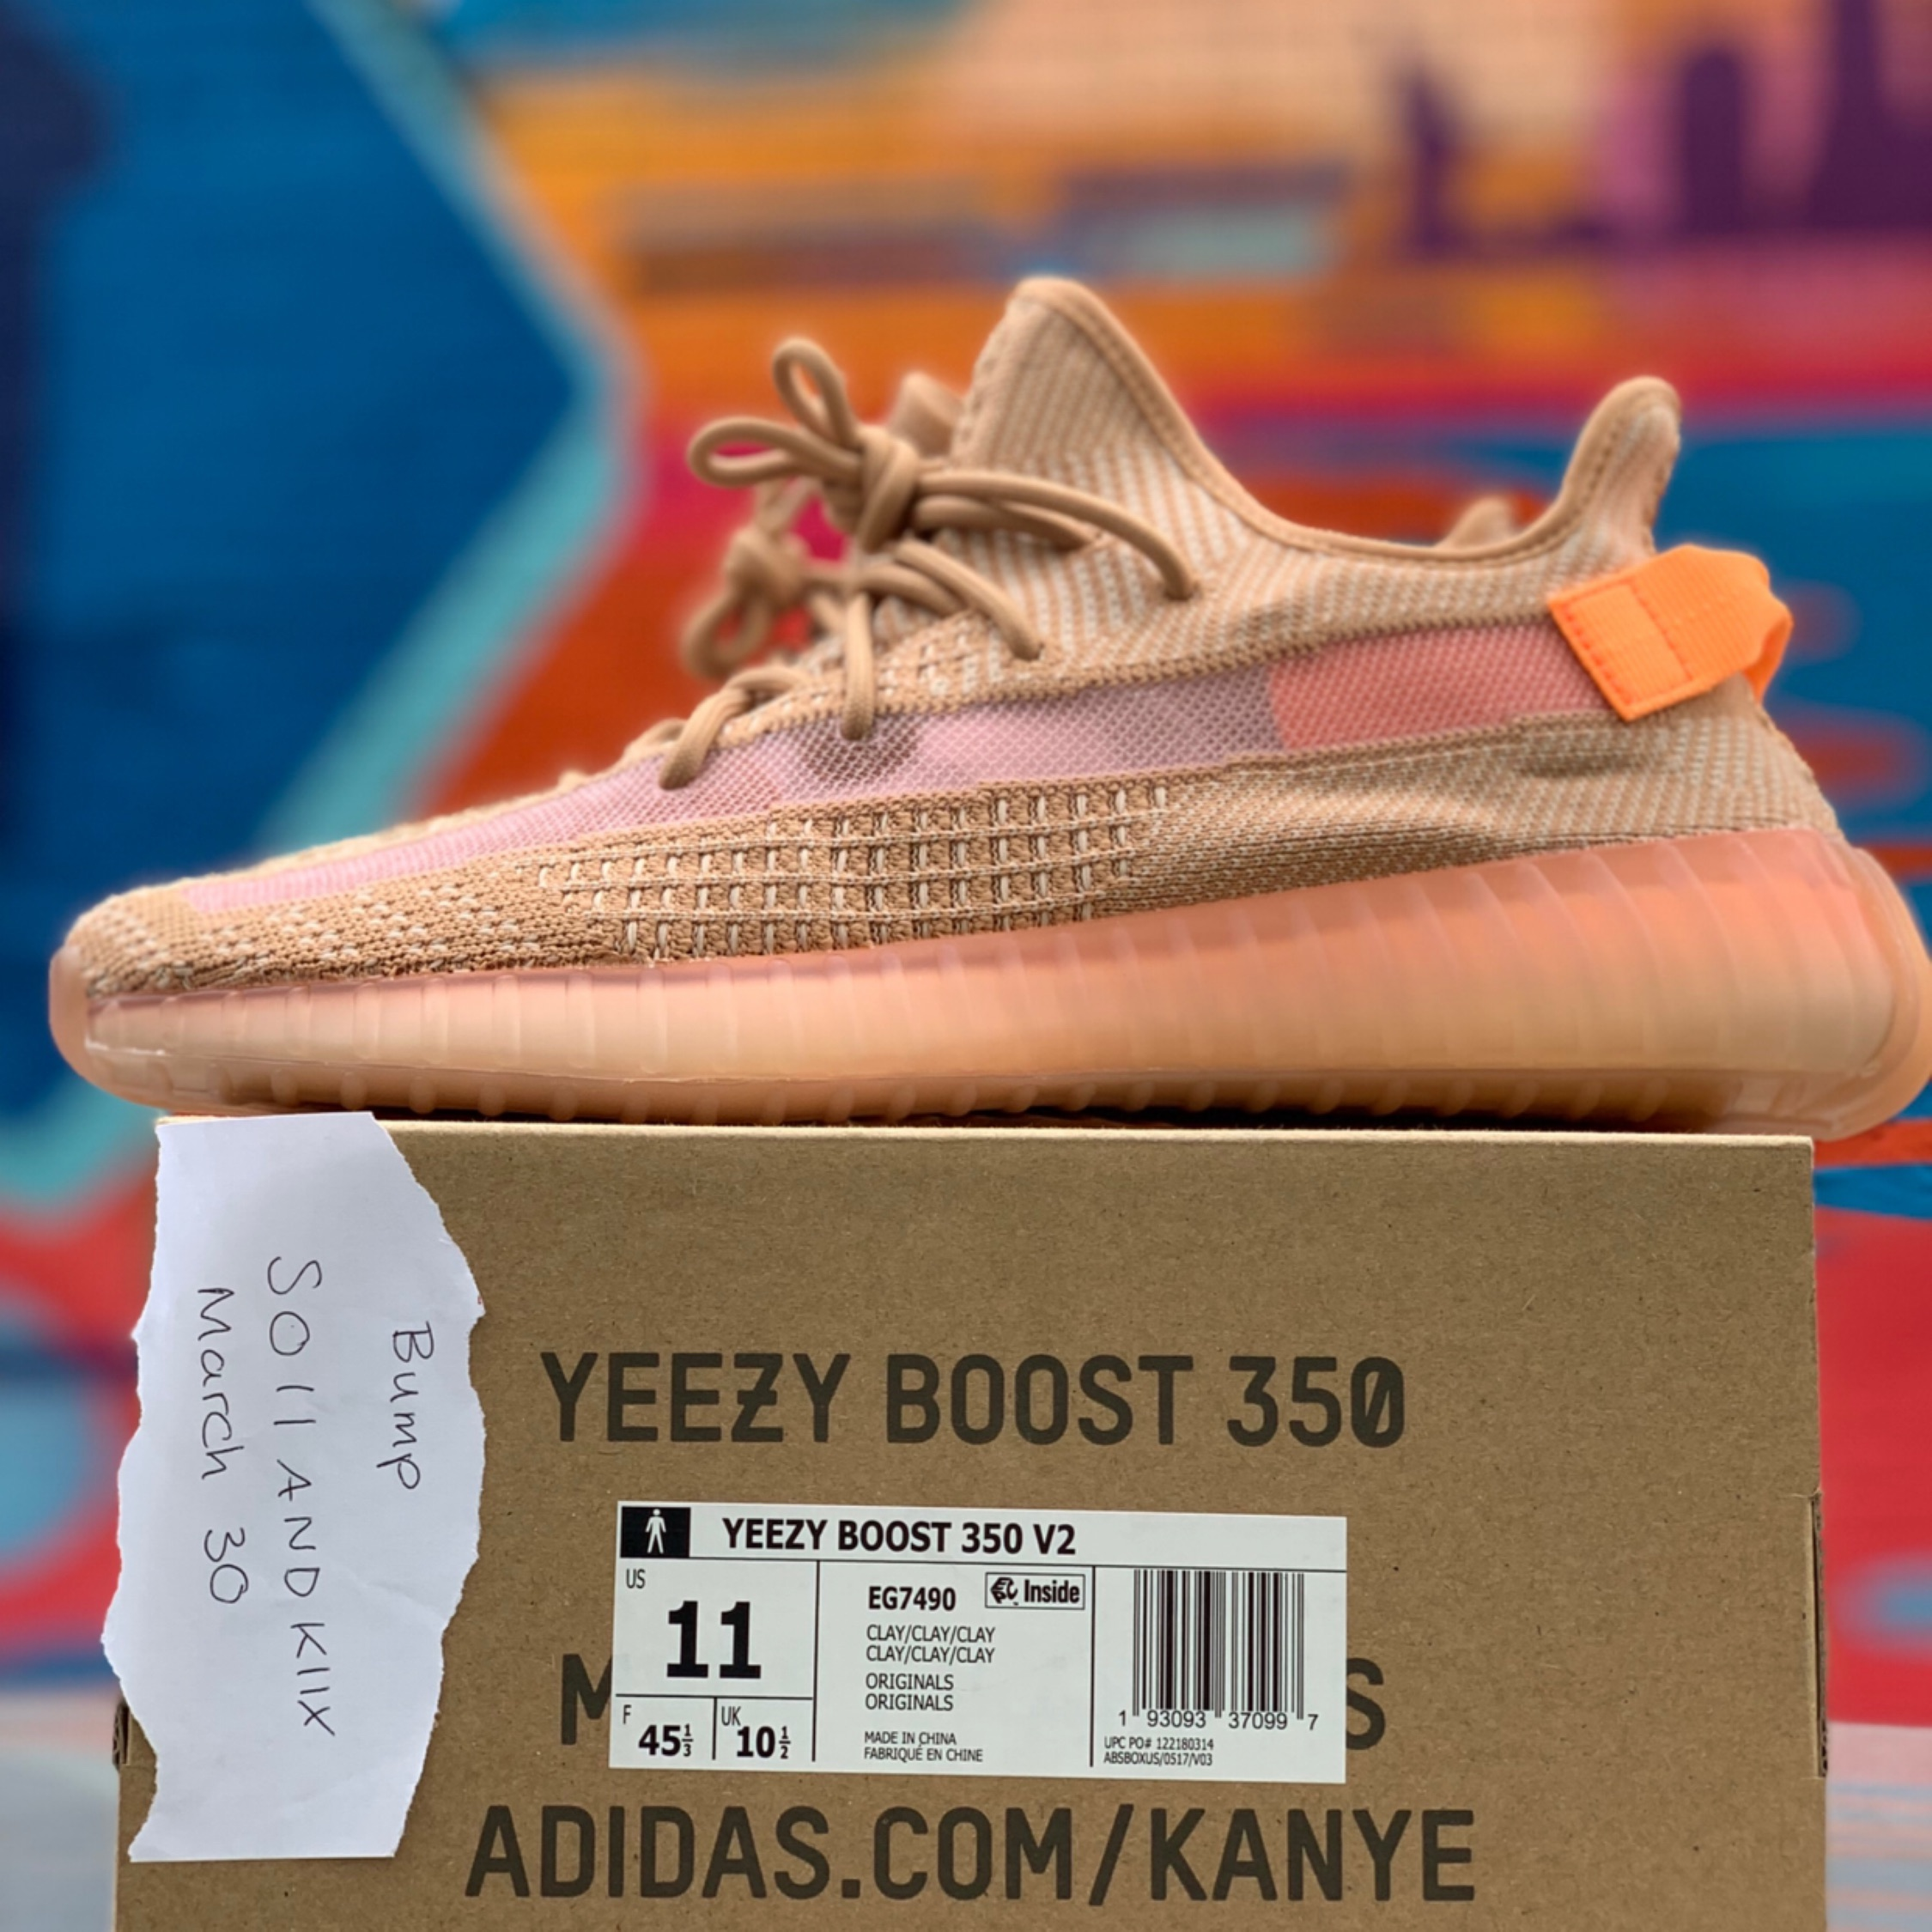 5c5c82f28b7ff Yeezy Boost 350. 1 like